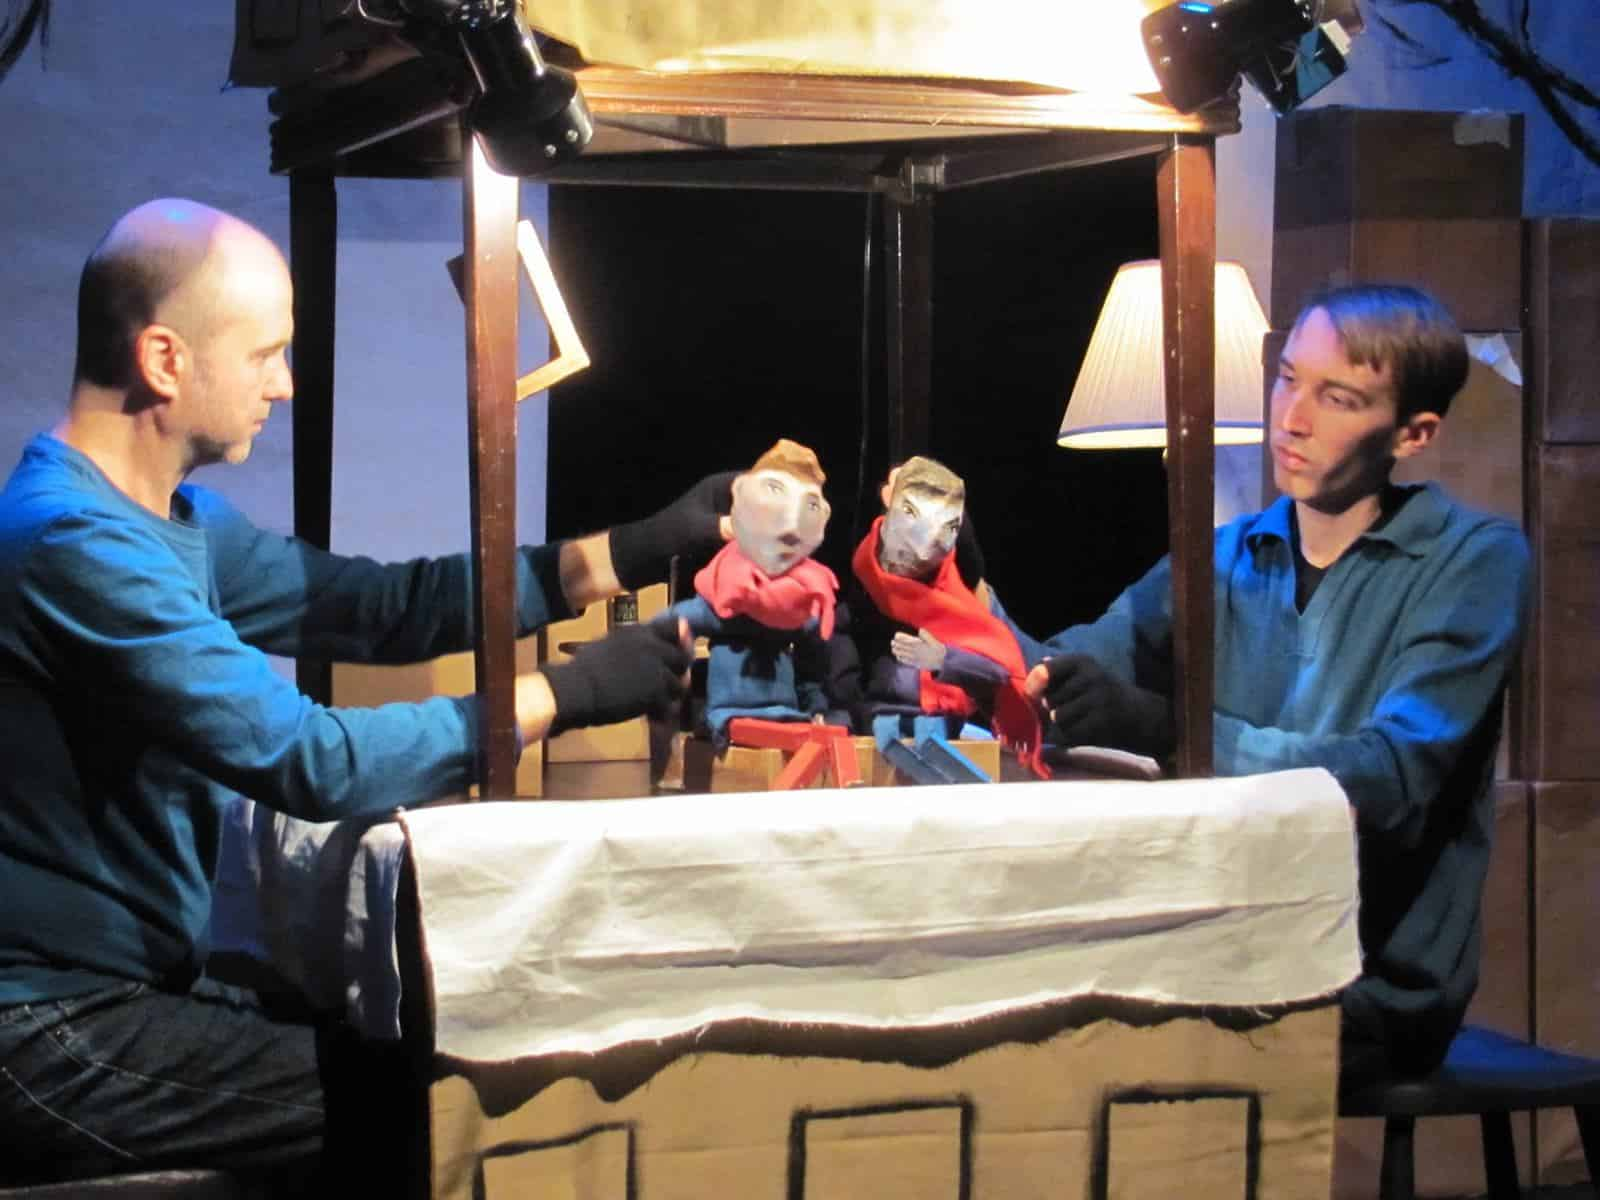 Us performing a puppet show.